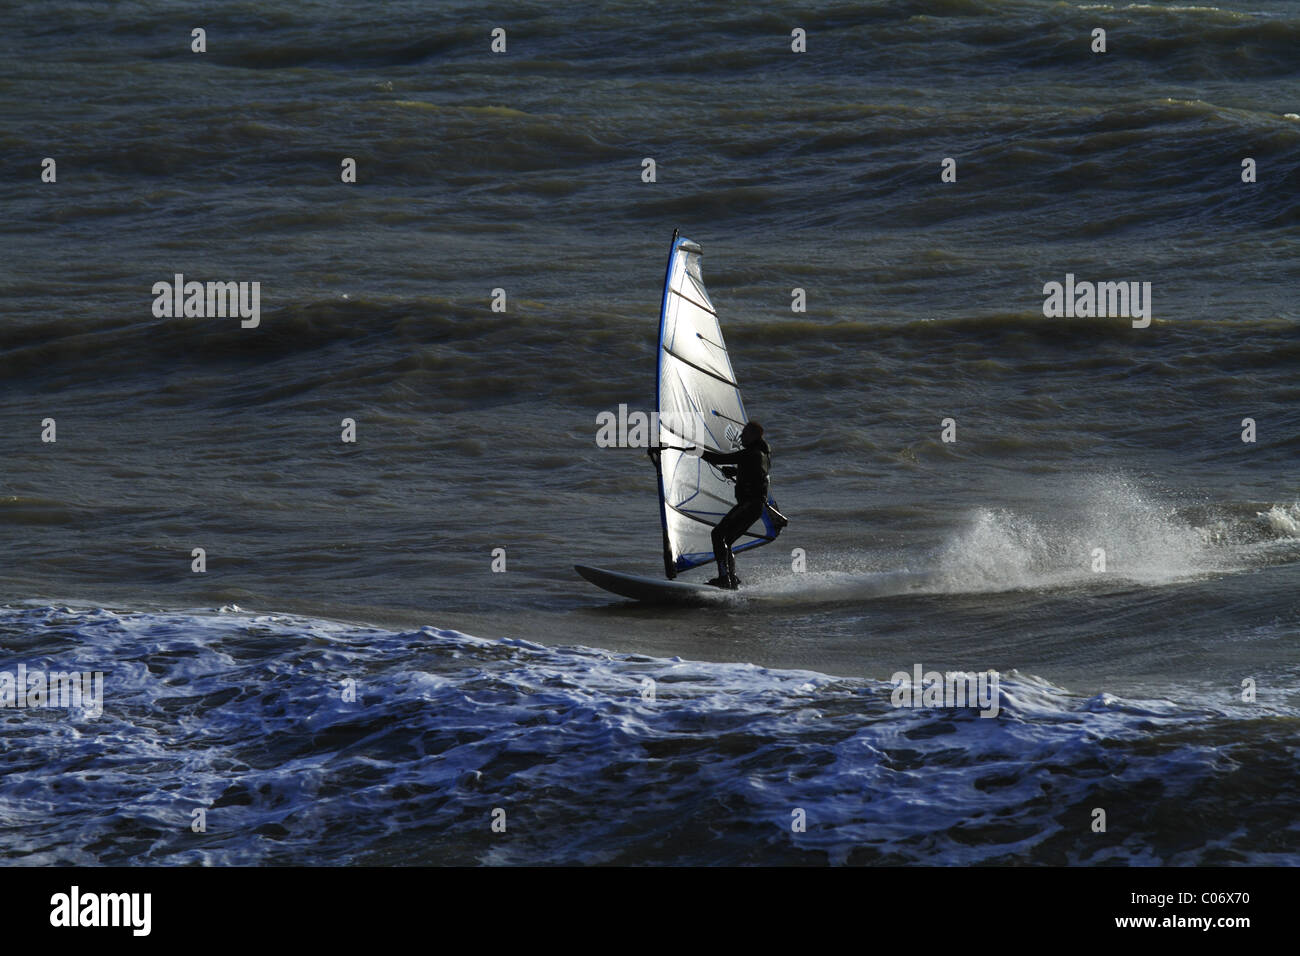 La planche à voile au large de Eastbourne, East Sussex, Angleterre. Photo Stock